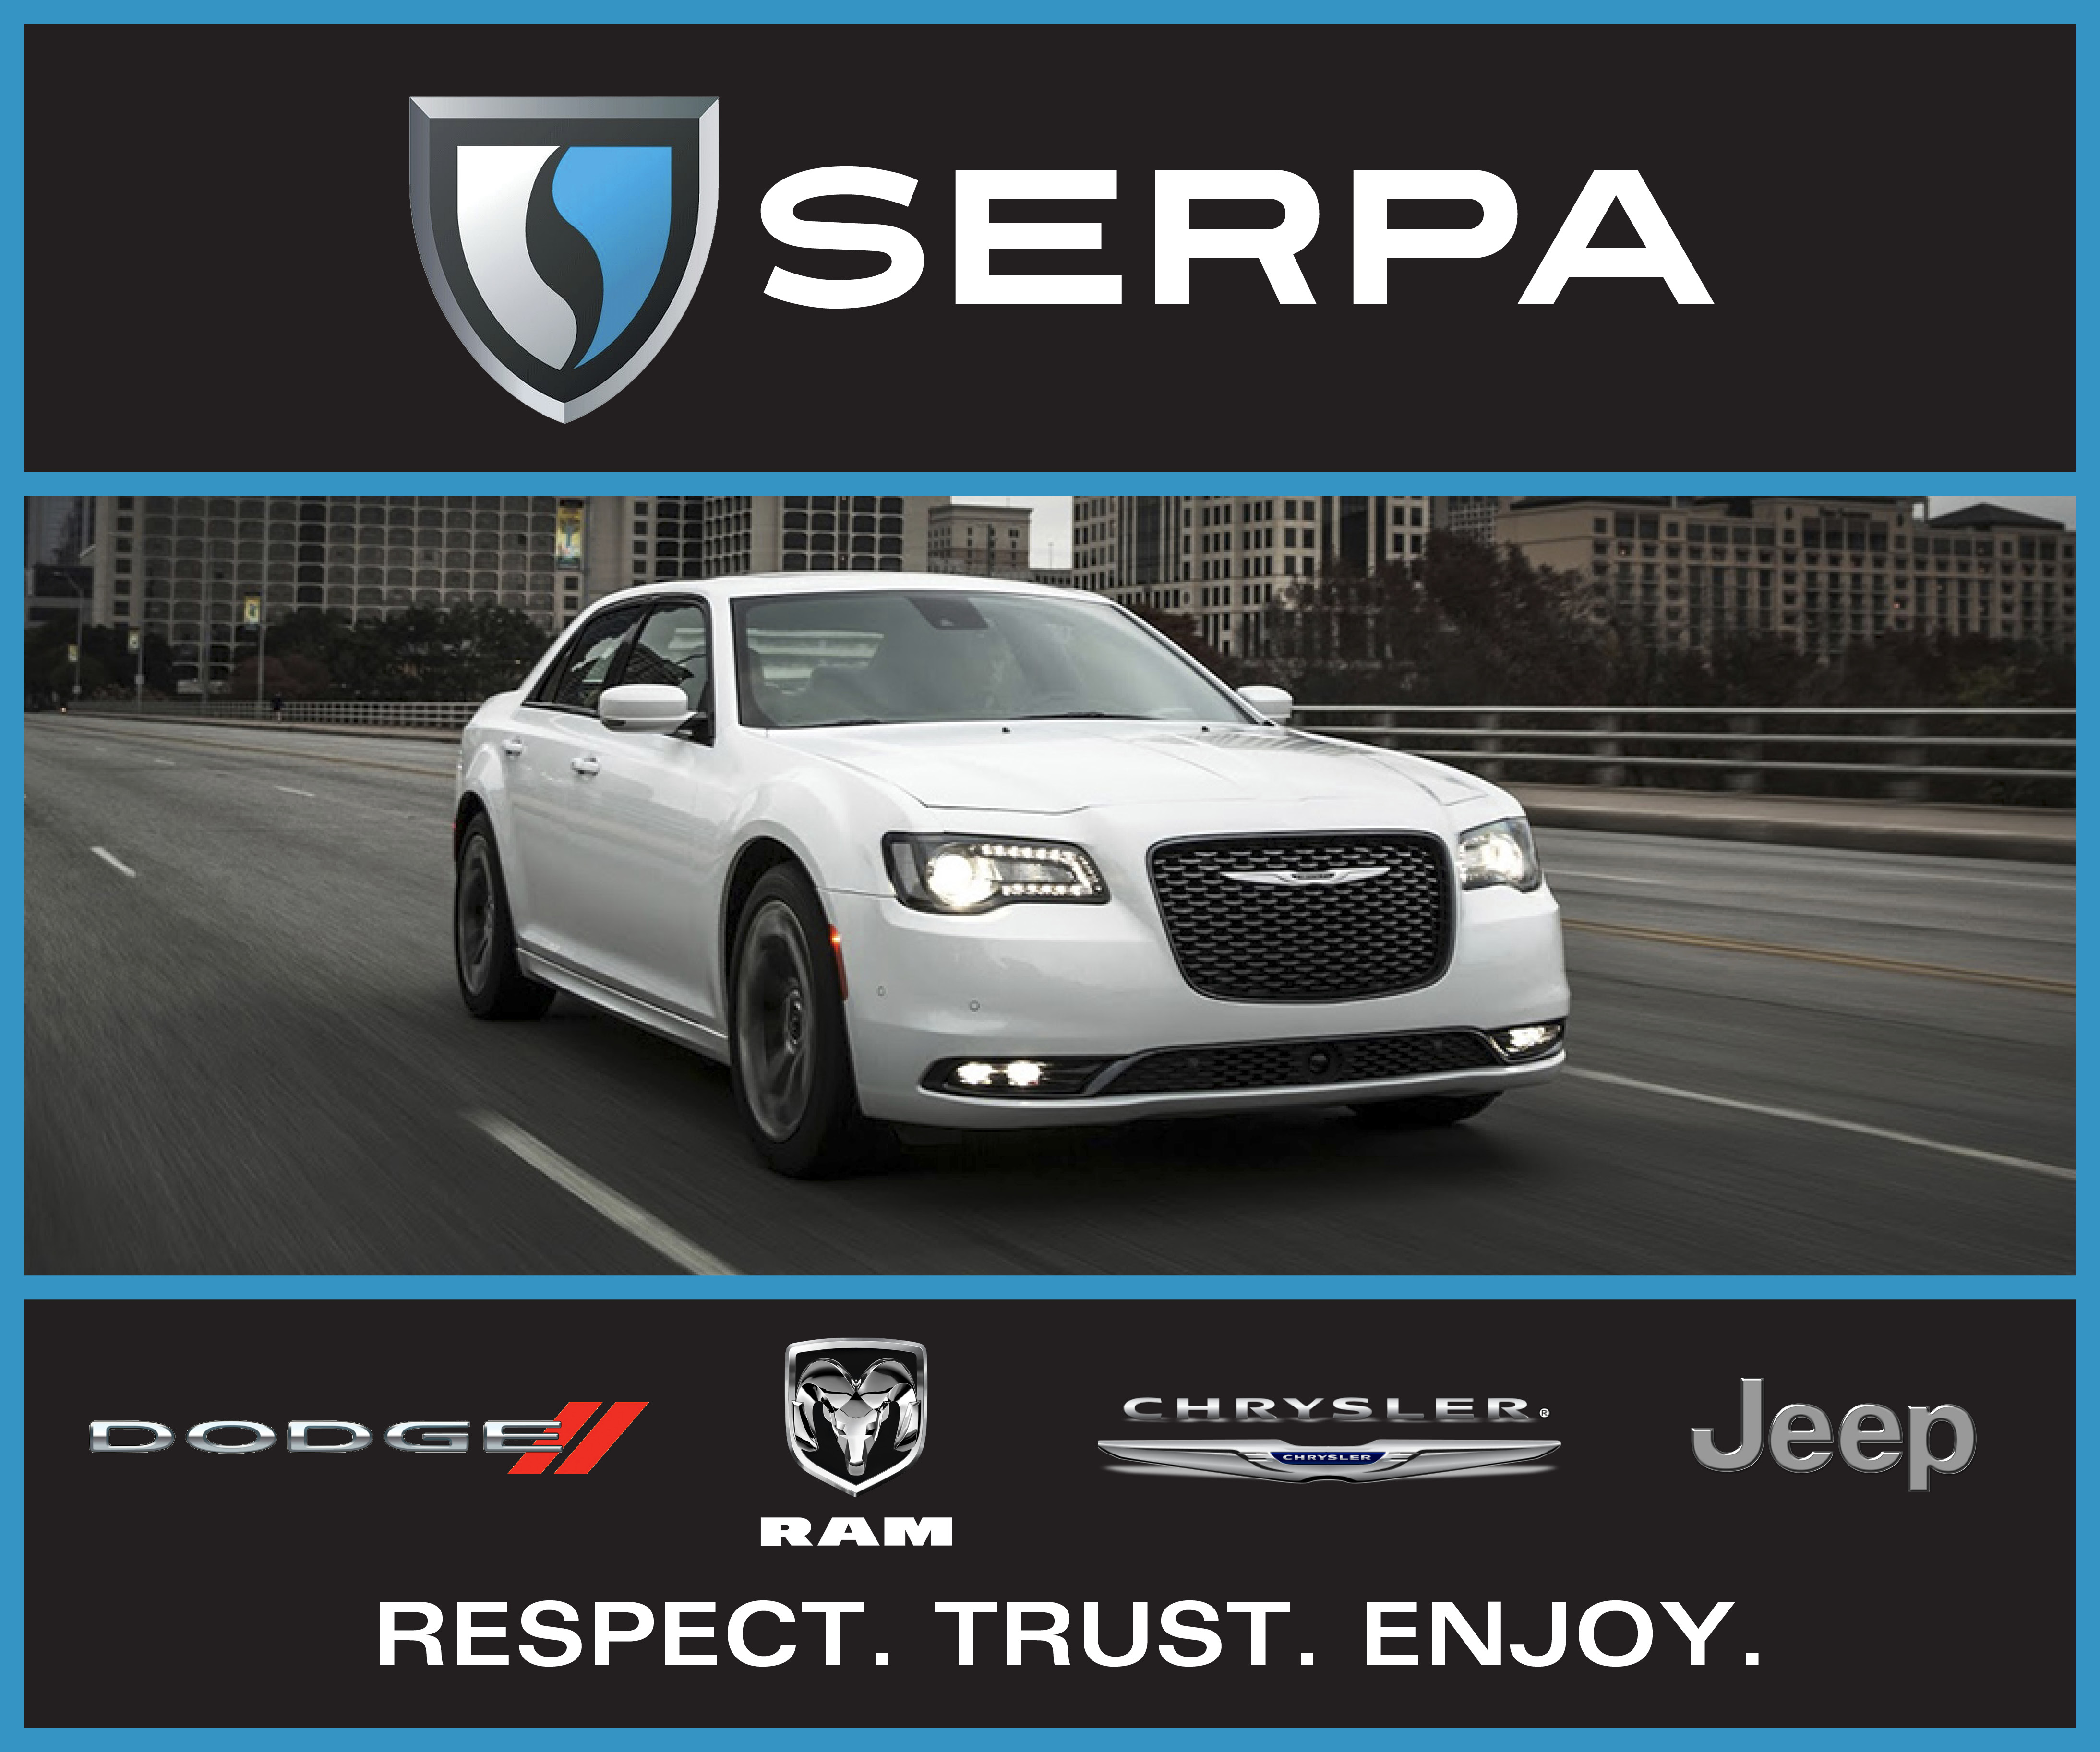 More from Serpa Chrysler